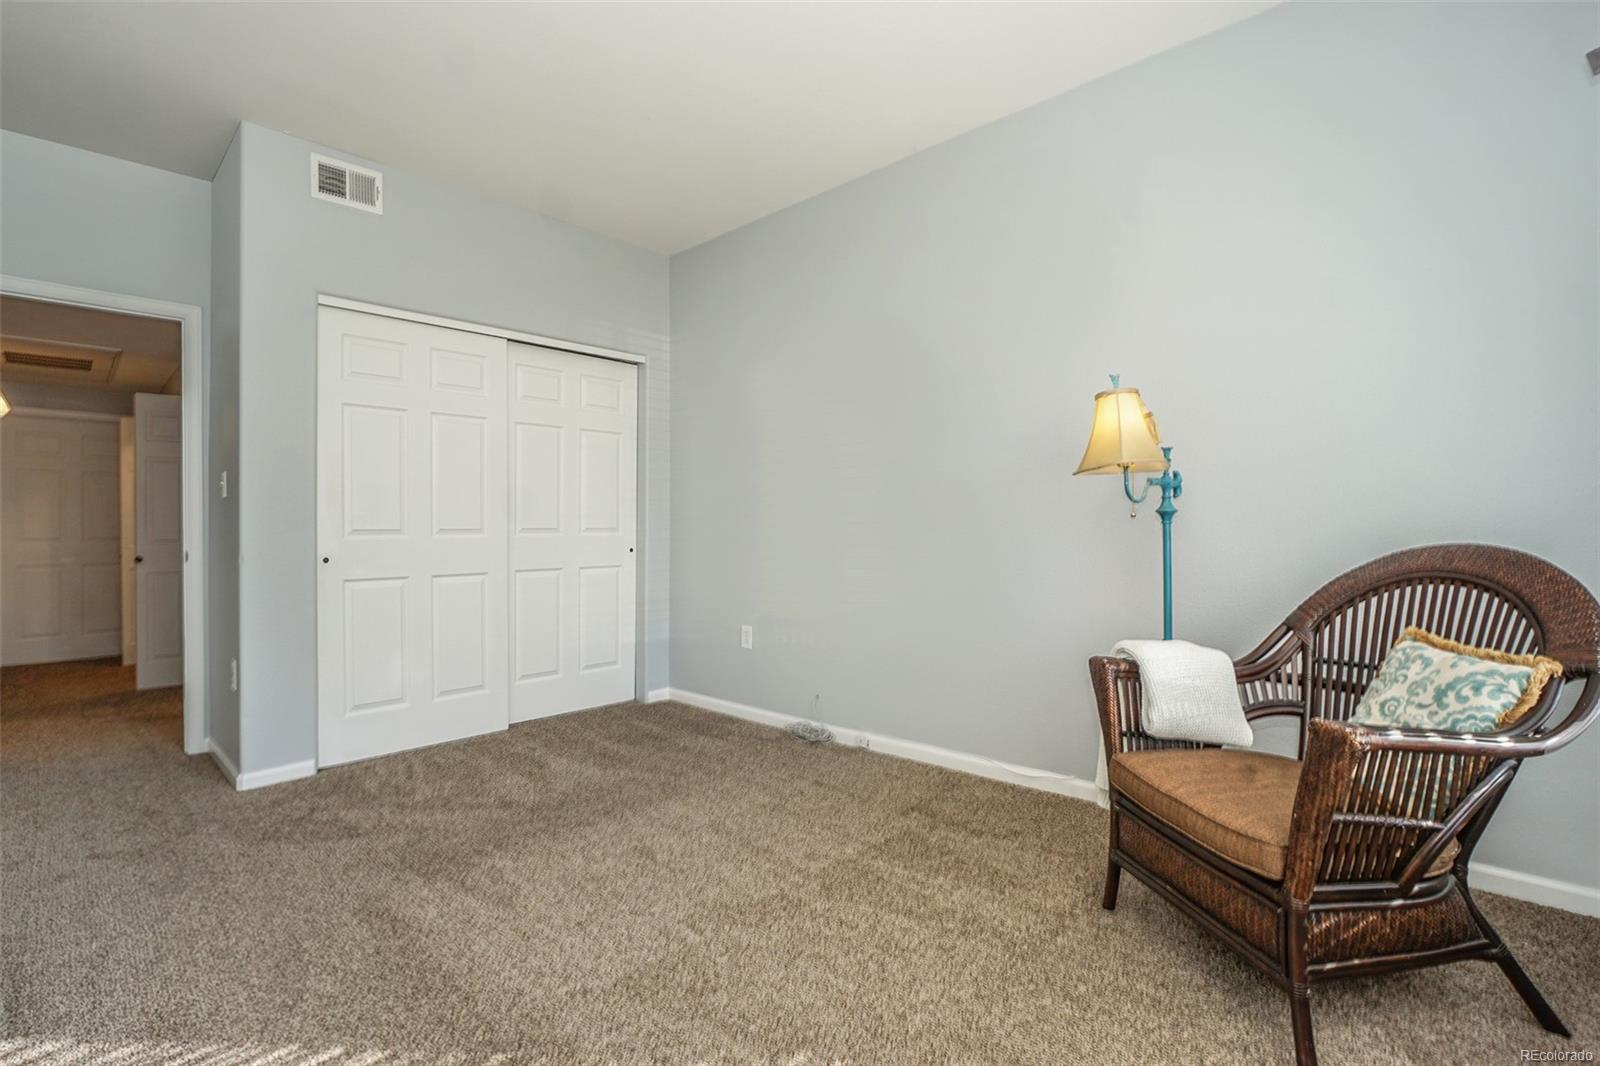 Guest bedroom? Office? It's up to you!